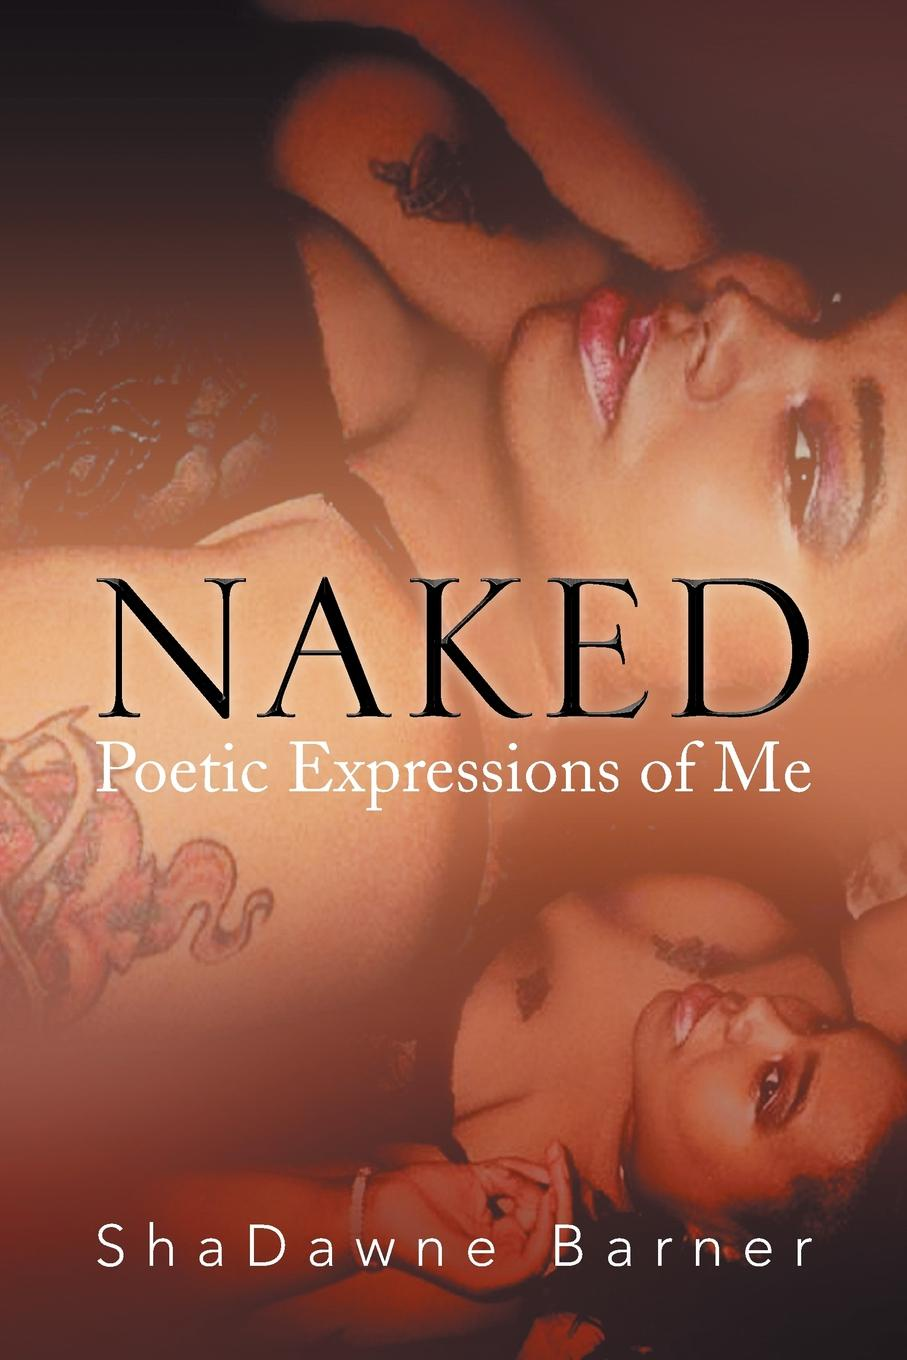 Shadawne Barner Naked. Poetic Expressions of Me